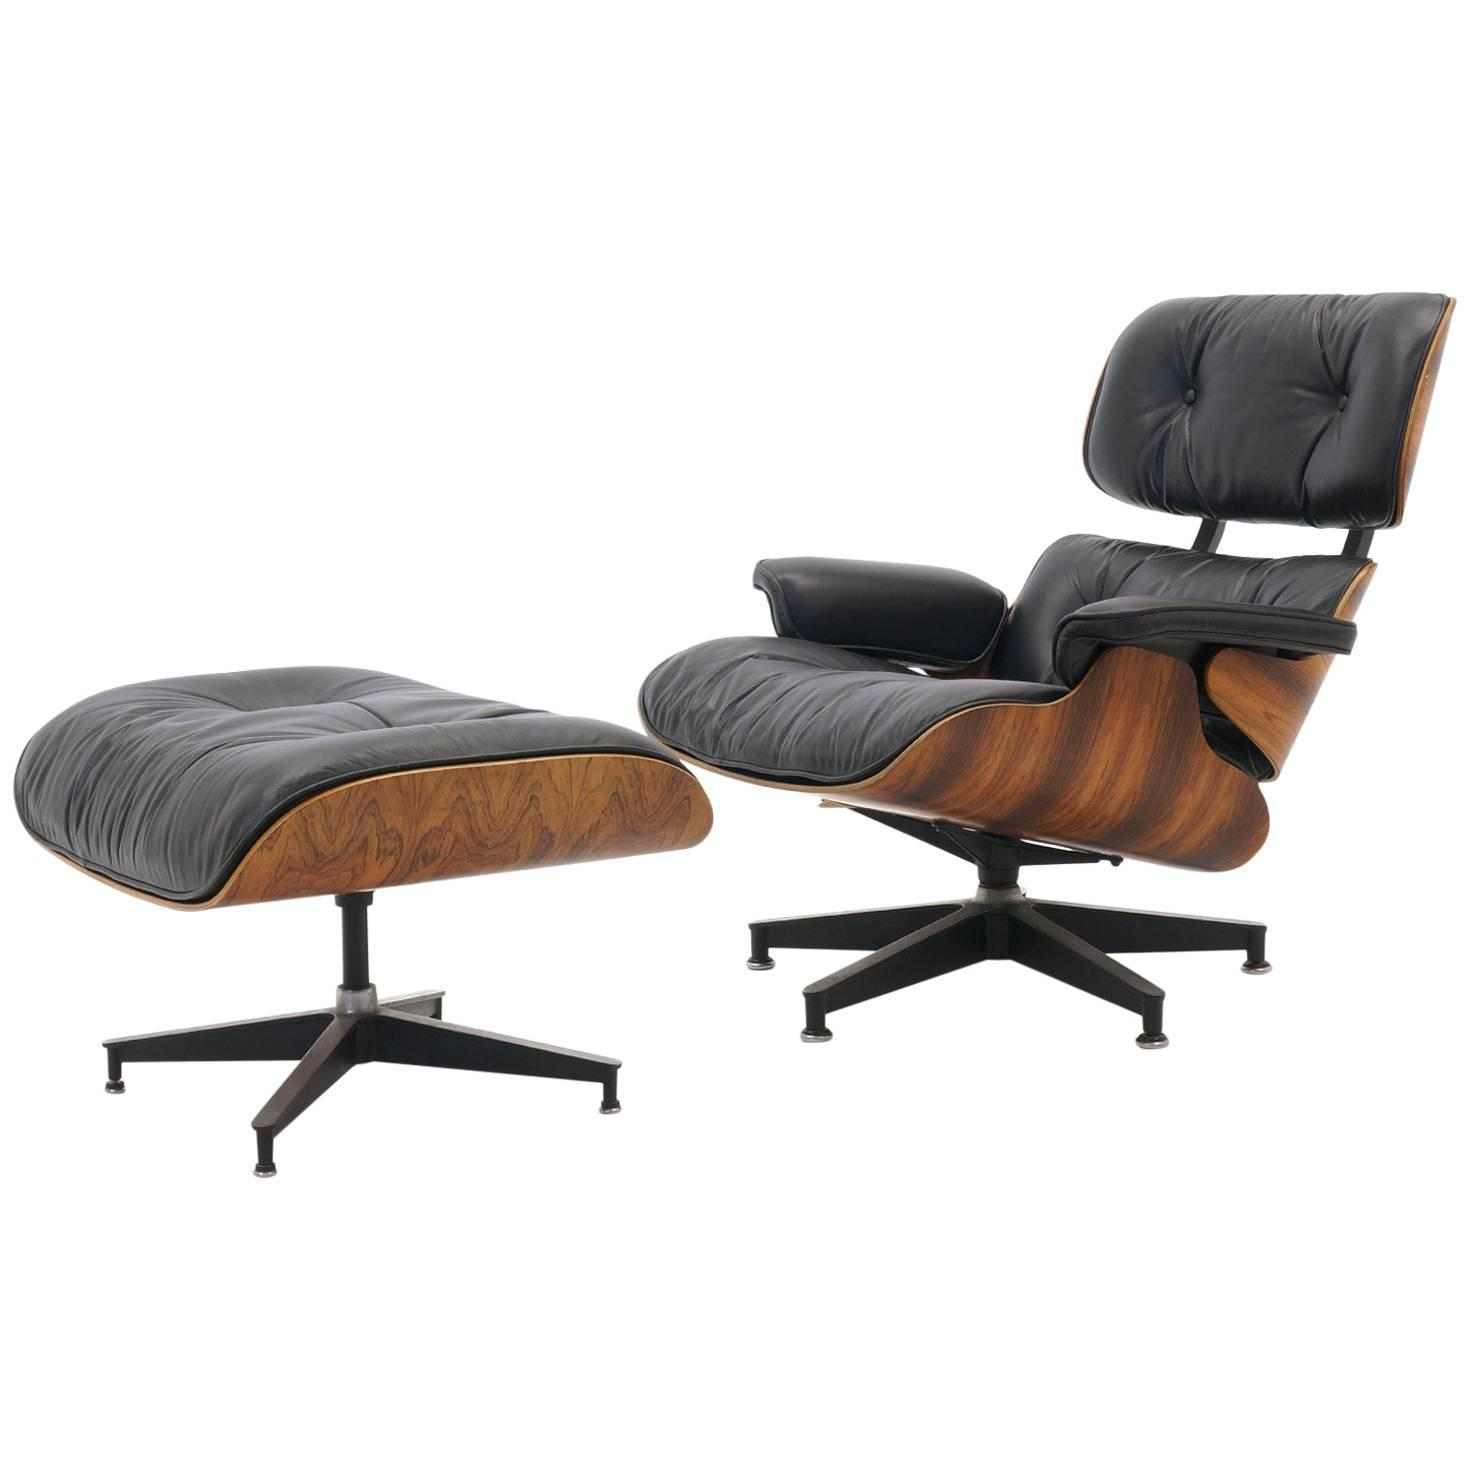 Excellent Original Brazilian Rosewood Eames Lounge Chair and